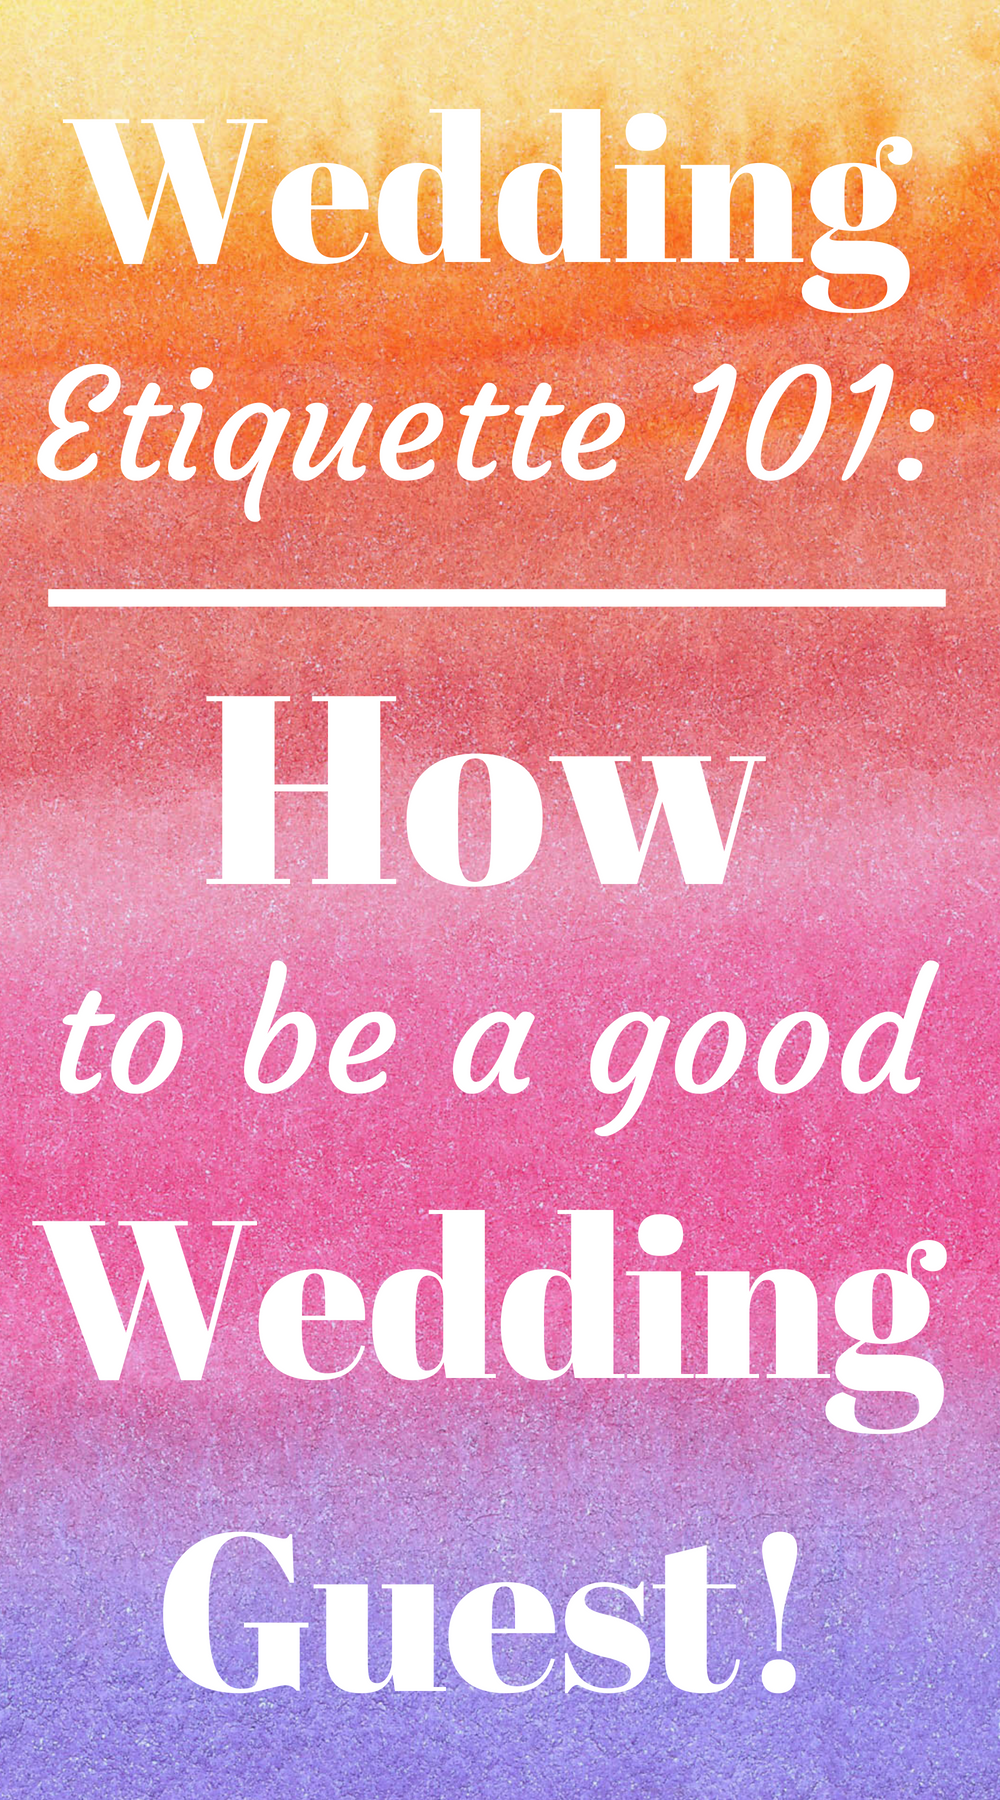 Wedding Guest Etiquette How To Be A Good Wedding Guest Wedding Guest Etiquette Wedding Guest Wedding Ettiquette